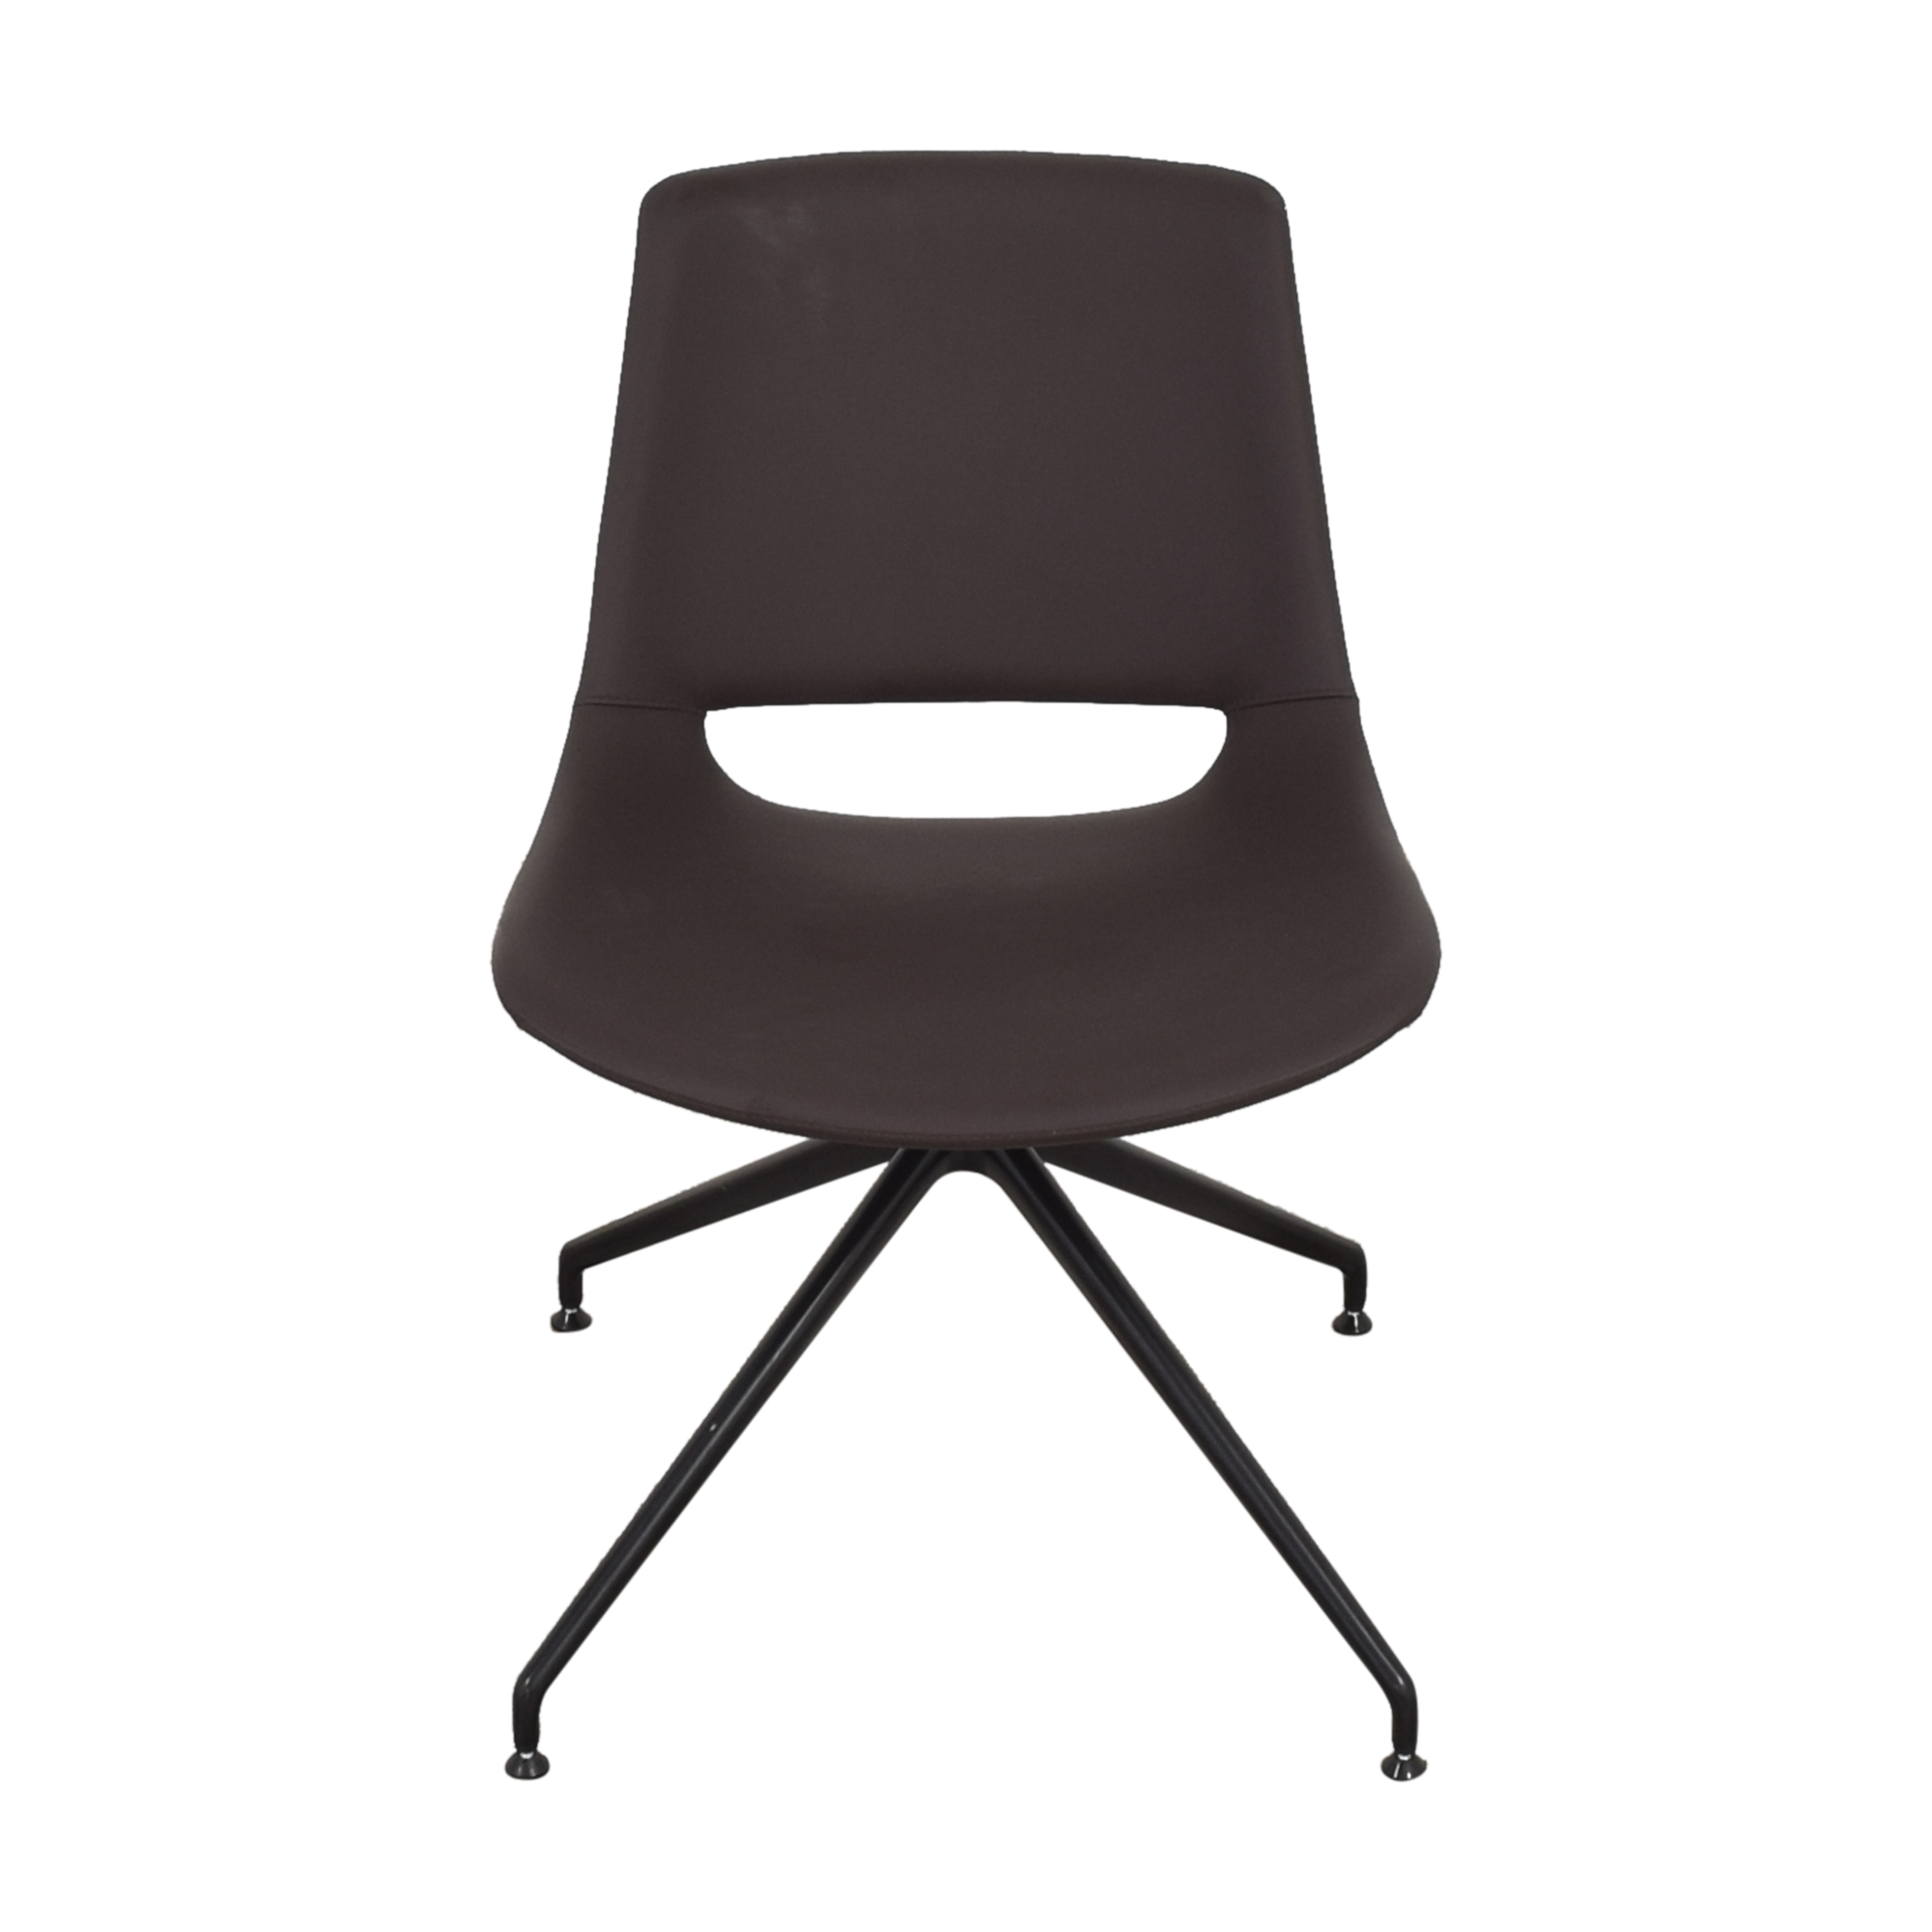 Arper Palm Trestle Swivel Chair / Chairs